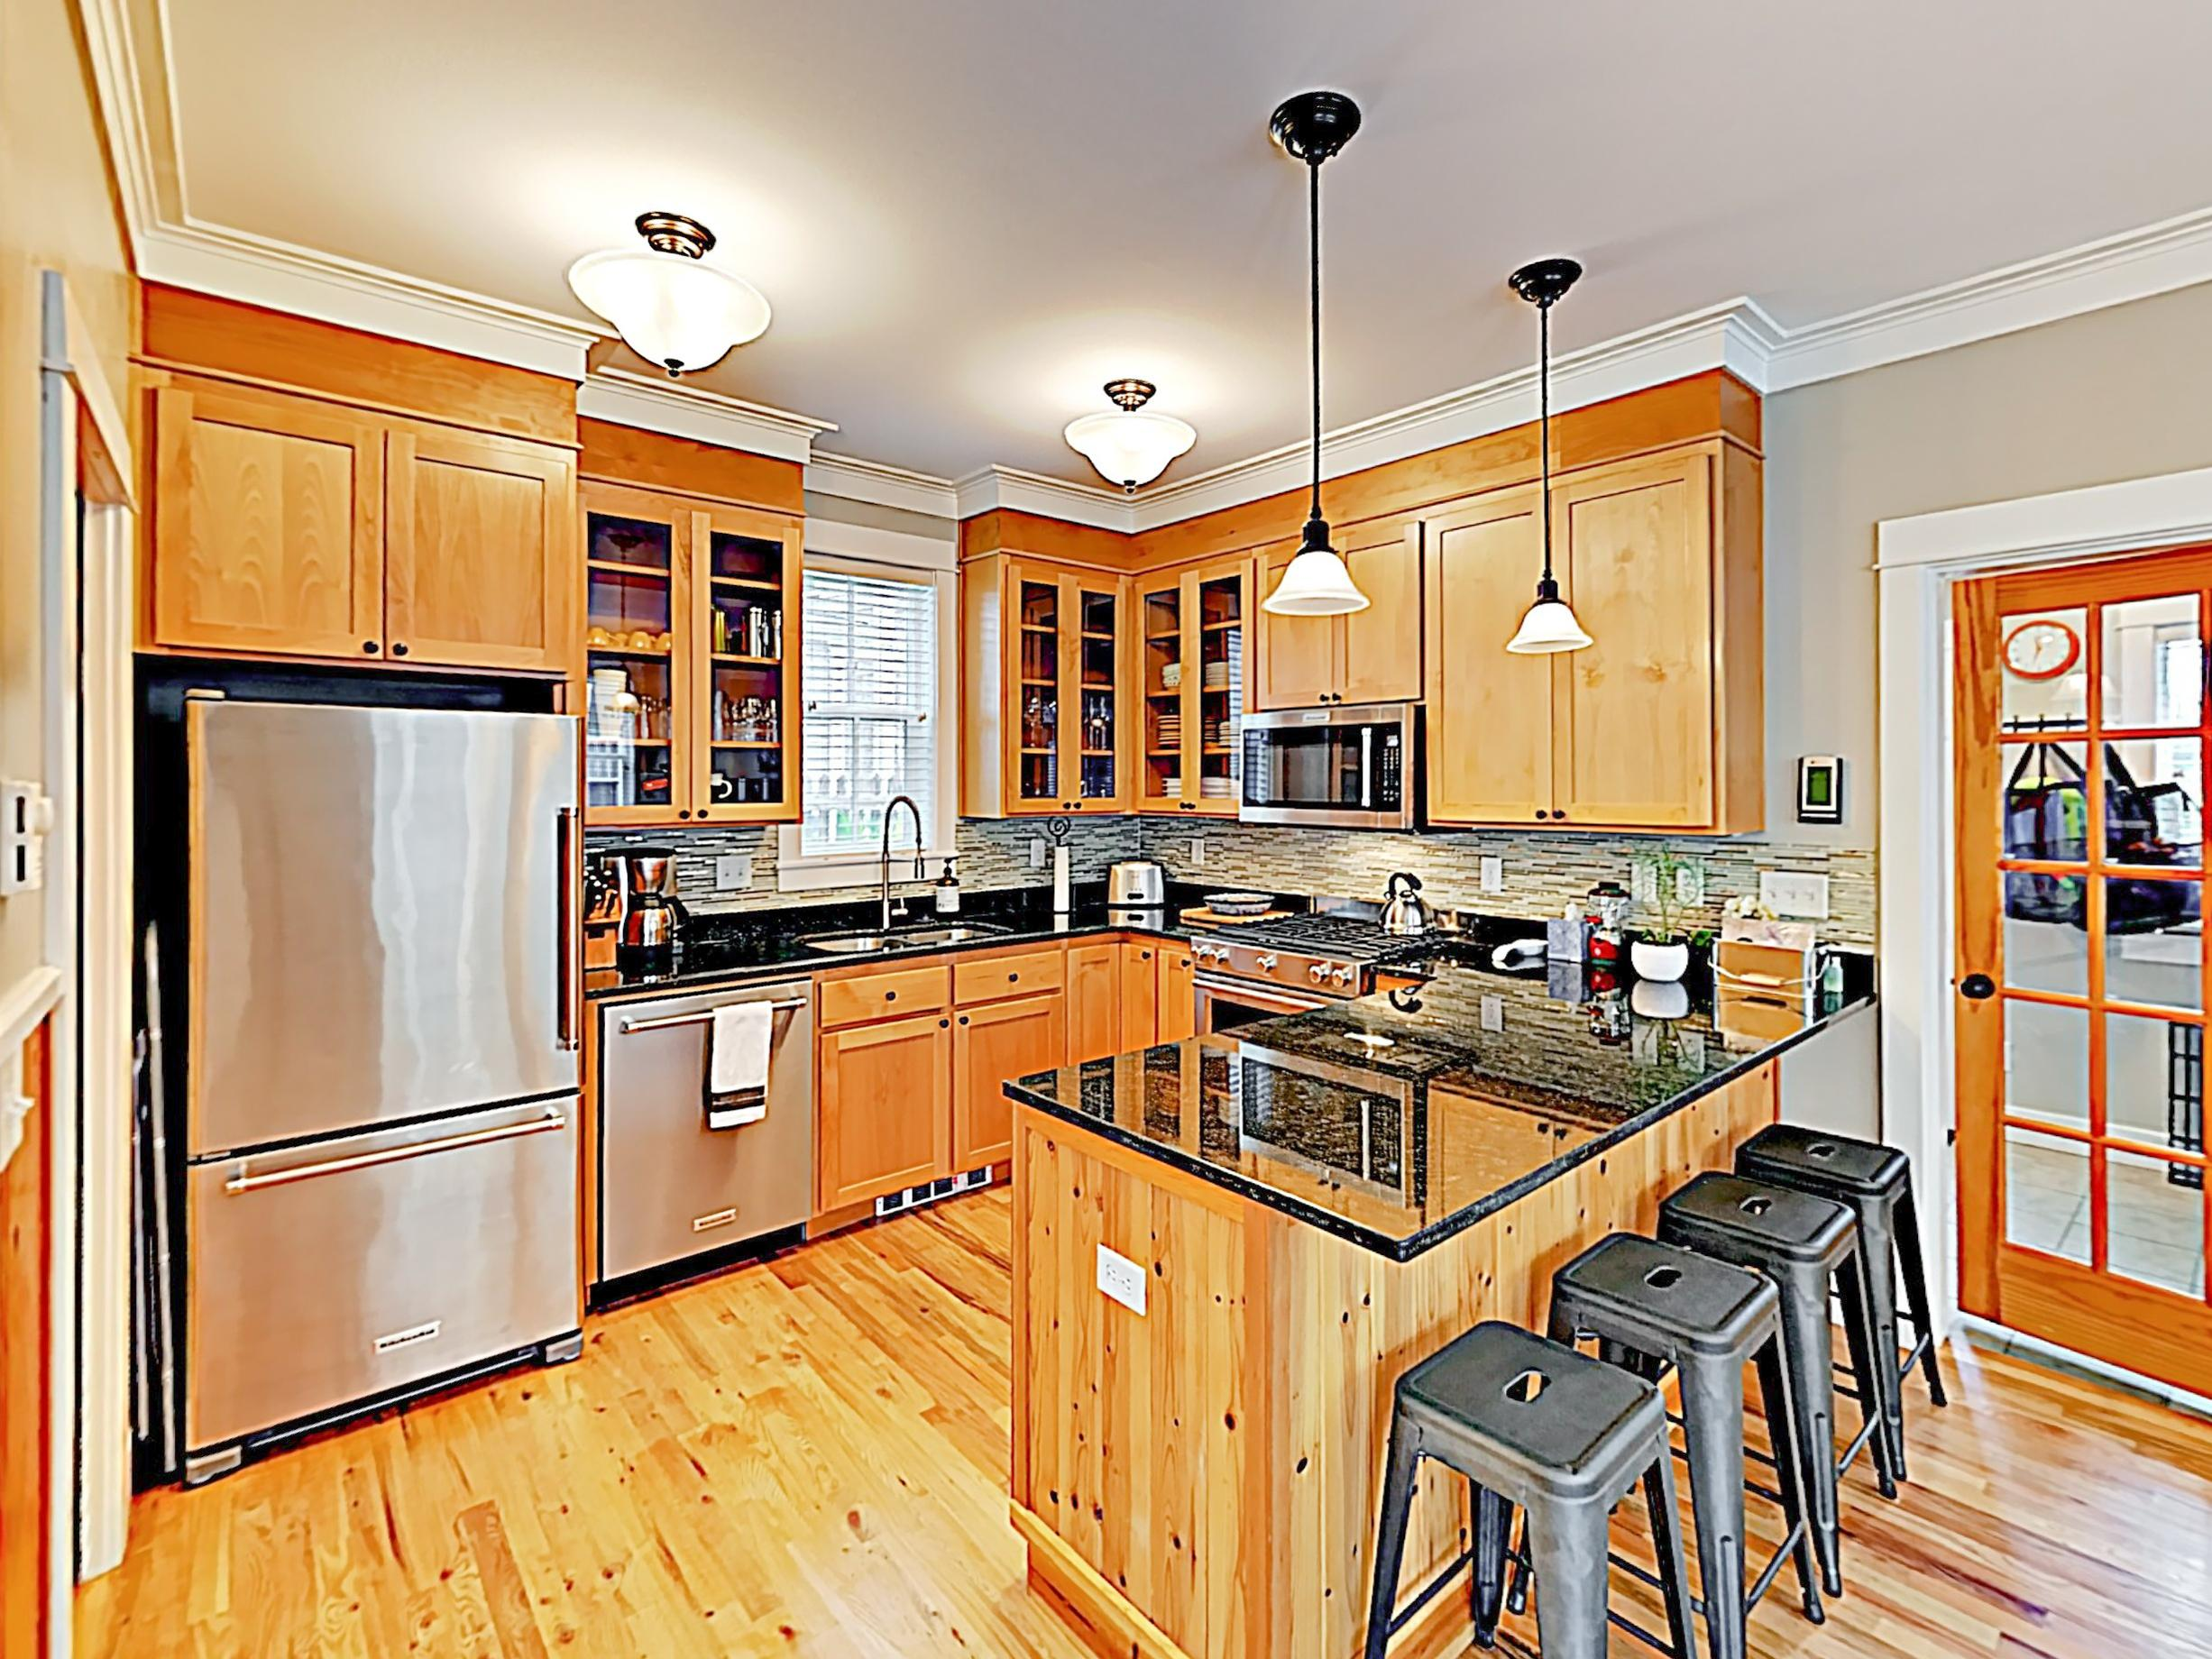 Chefs will appreciate granite countertops and stainless steel appliances in the kitchen.